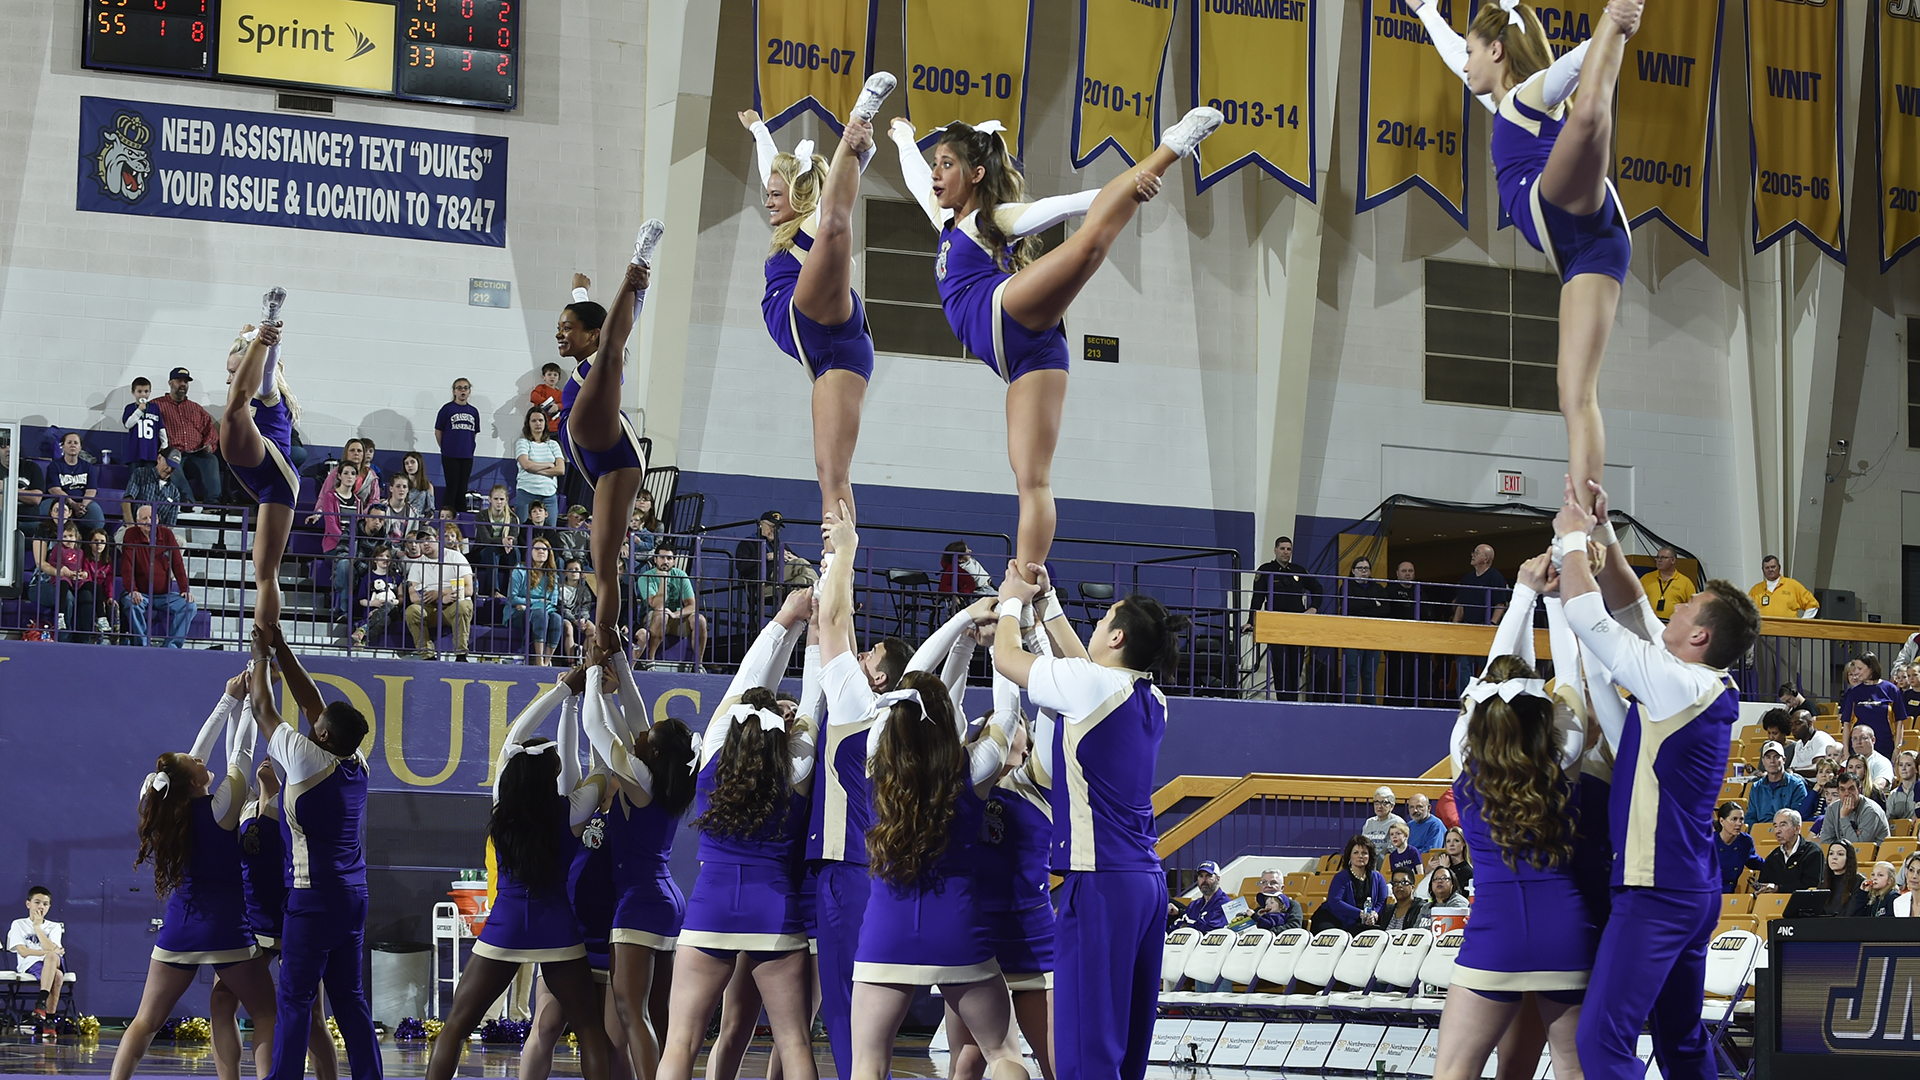 Cheerleading: Cheer to Host Four-Day Summer Youth Camp